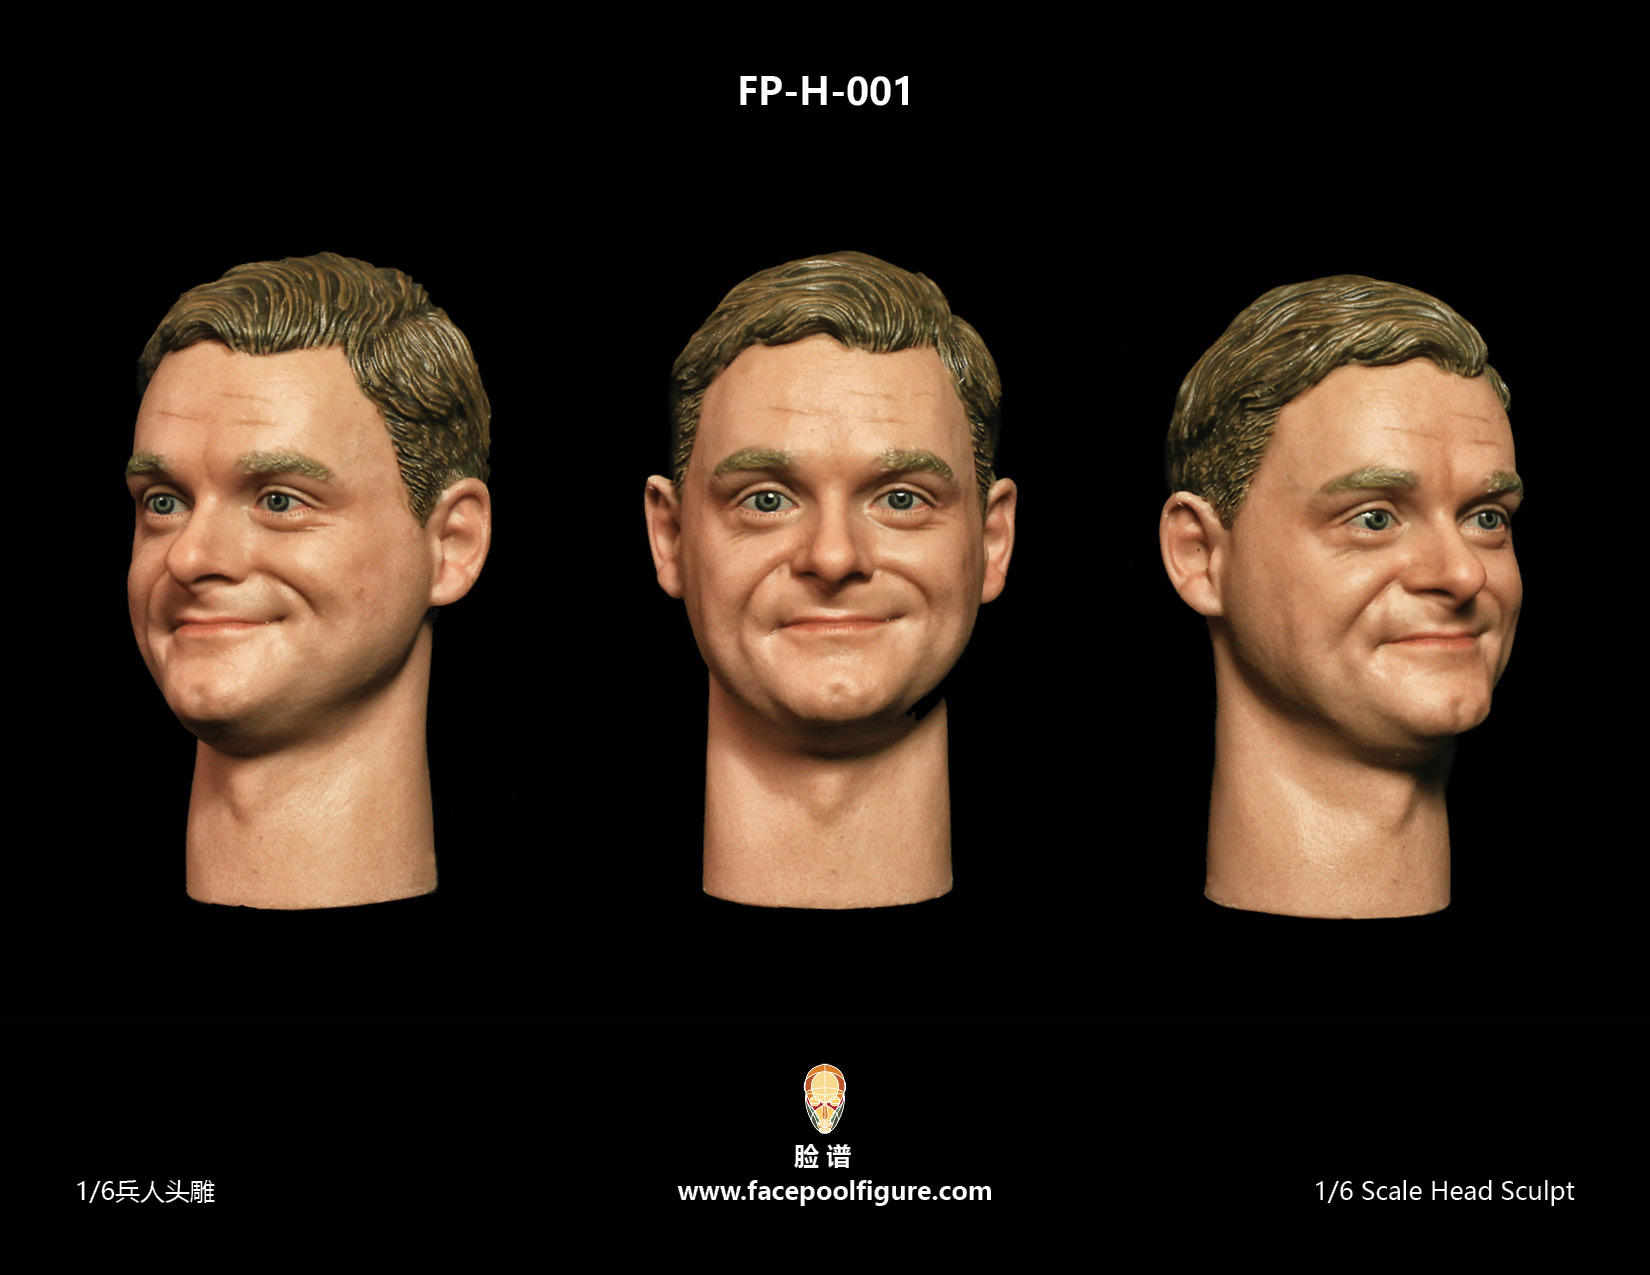 FacepoolFigure 1/6 Male Head Sculpt With Expression FP-H-001